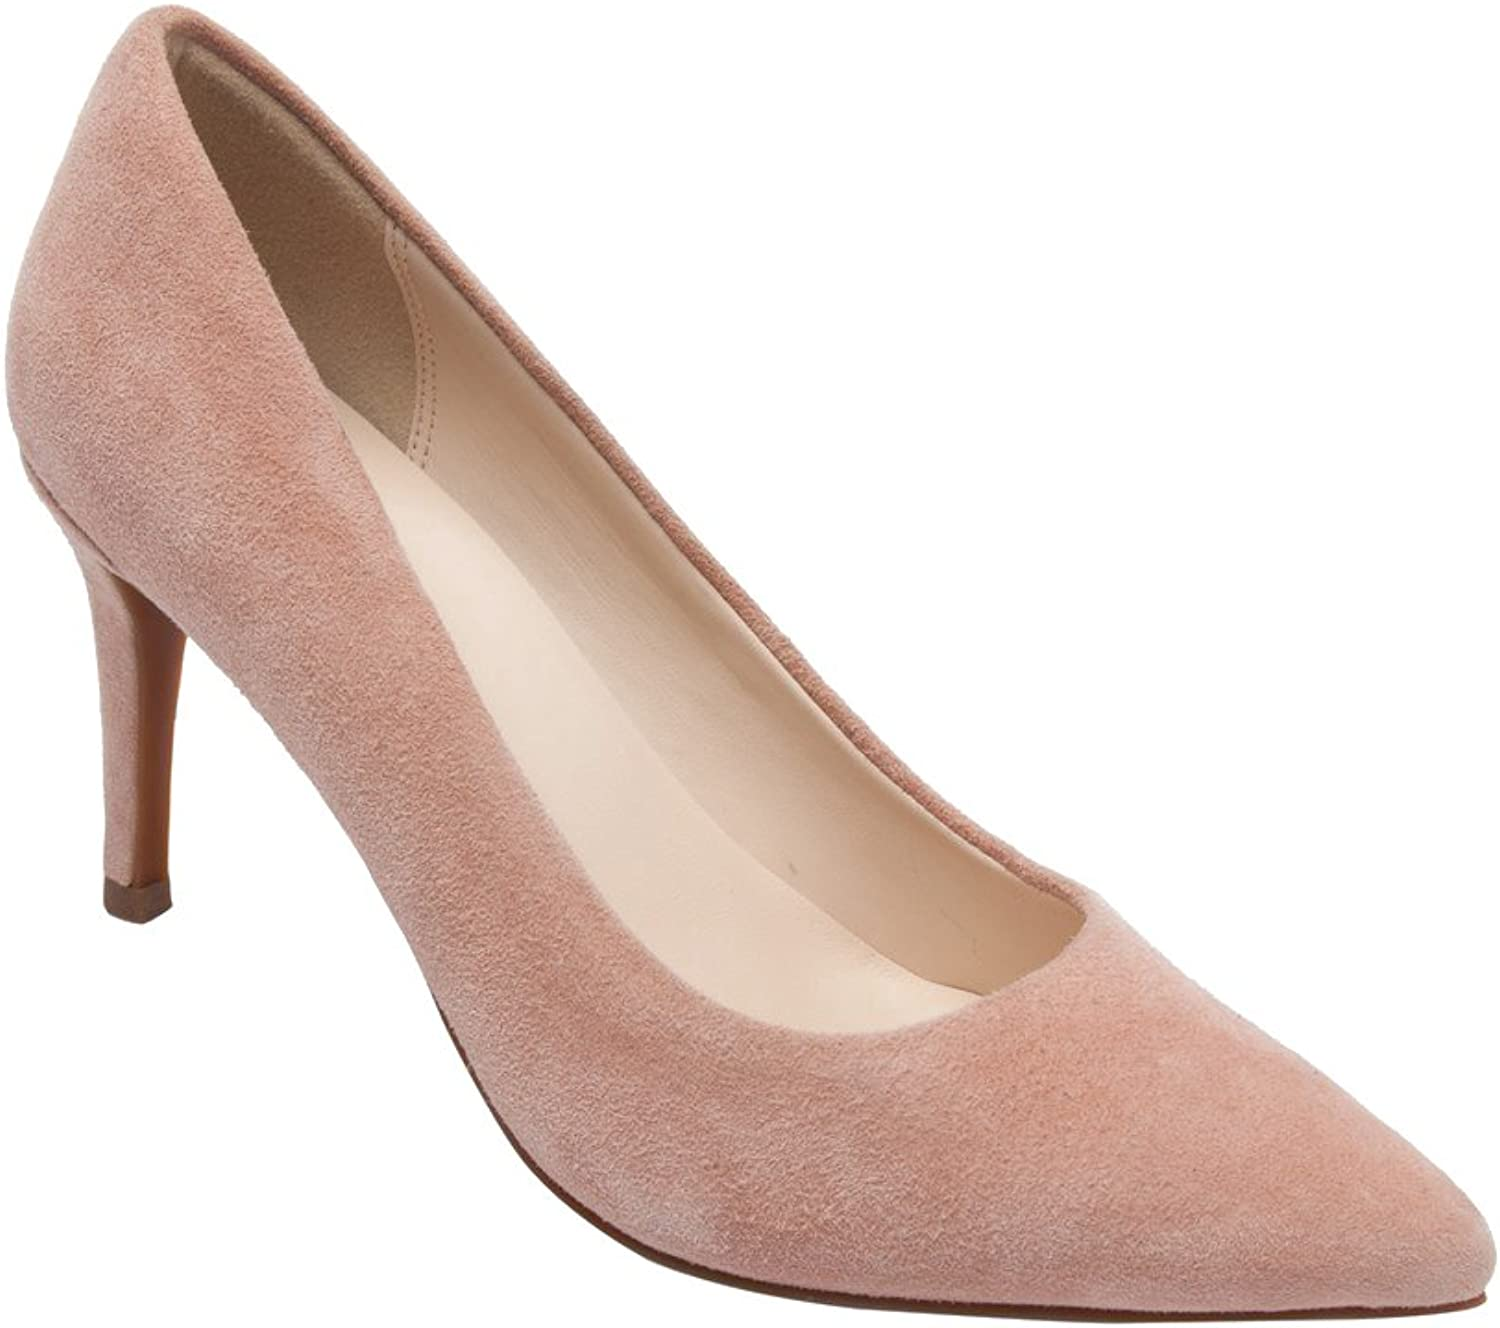 PIC PAY Lucia - Women's Pointy Toe Pumps - Elegant Suede Leather Stiletto High Heel shoes bluesh Suede 8.5M